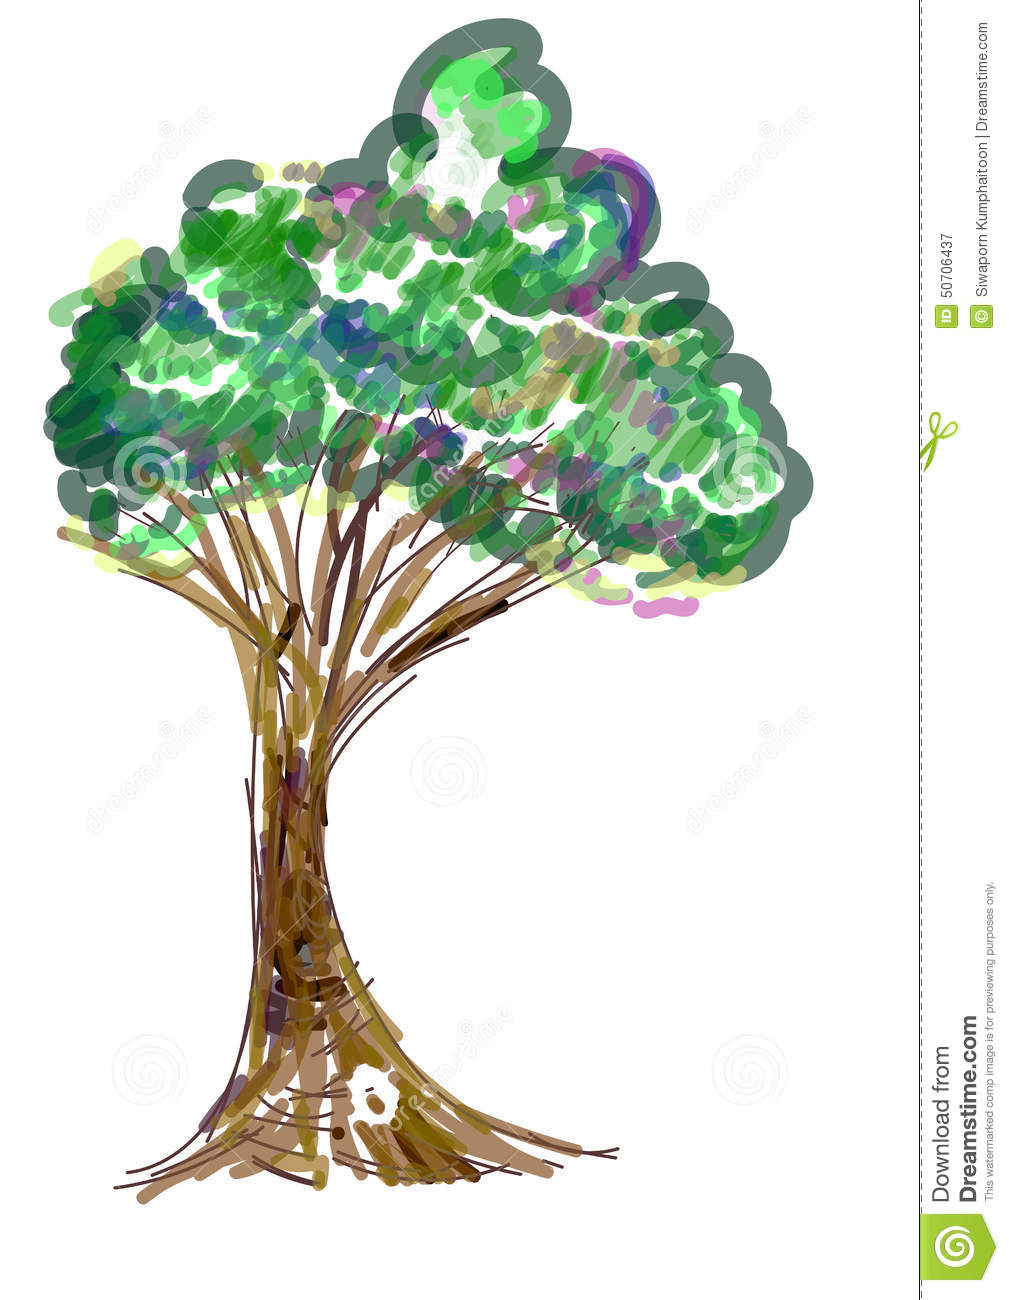 Tree painting icon stock vector. Illustration of illustration - 50706437 for Tree Drawing With Color  585hul